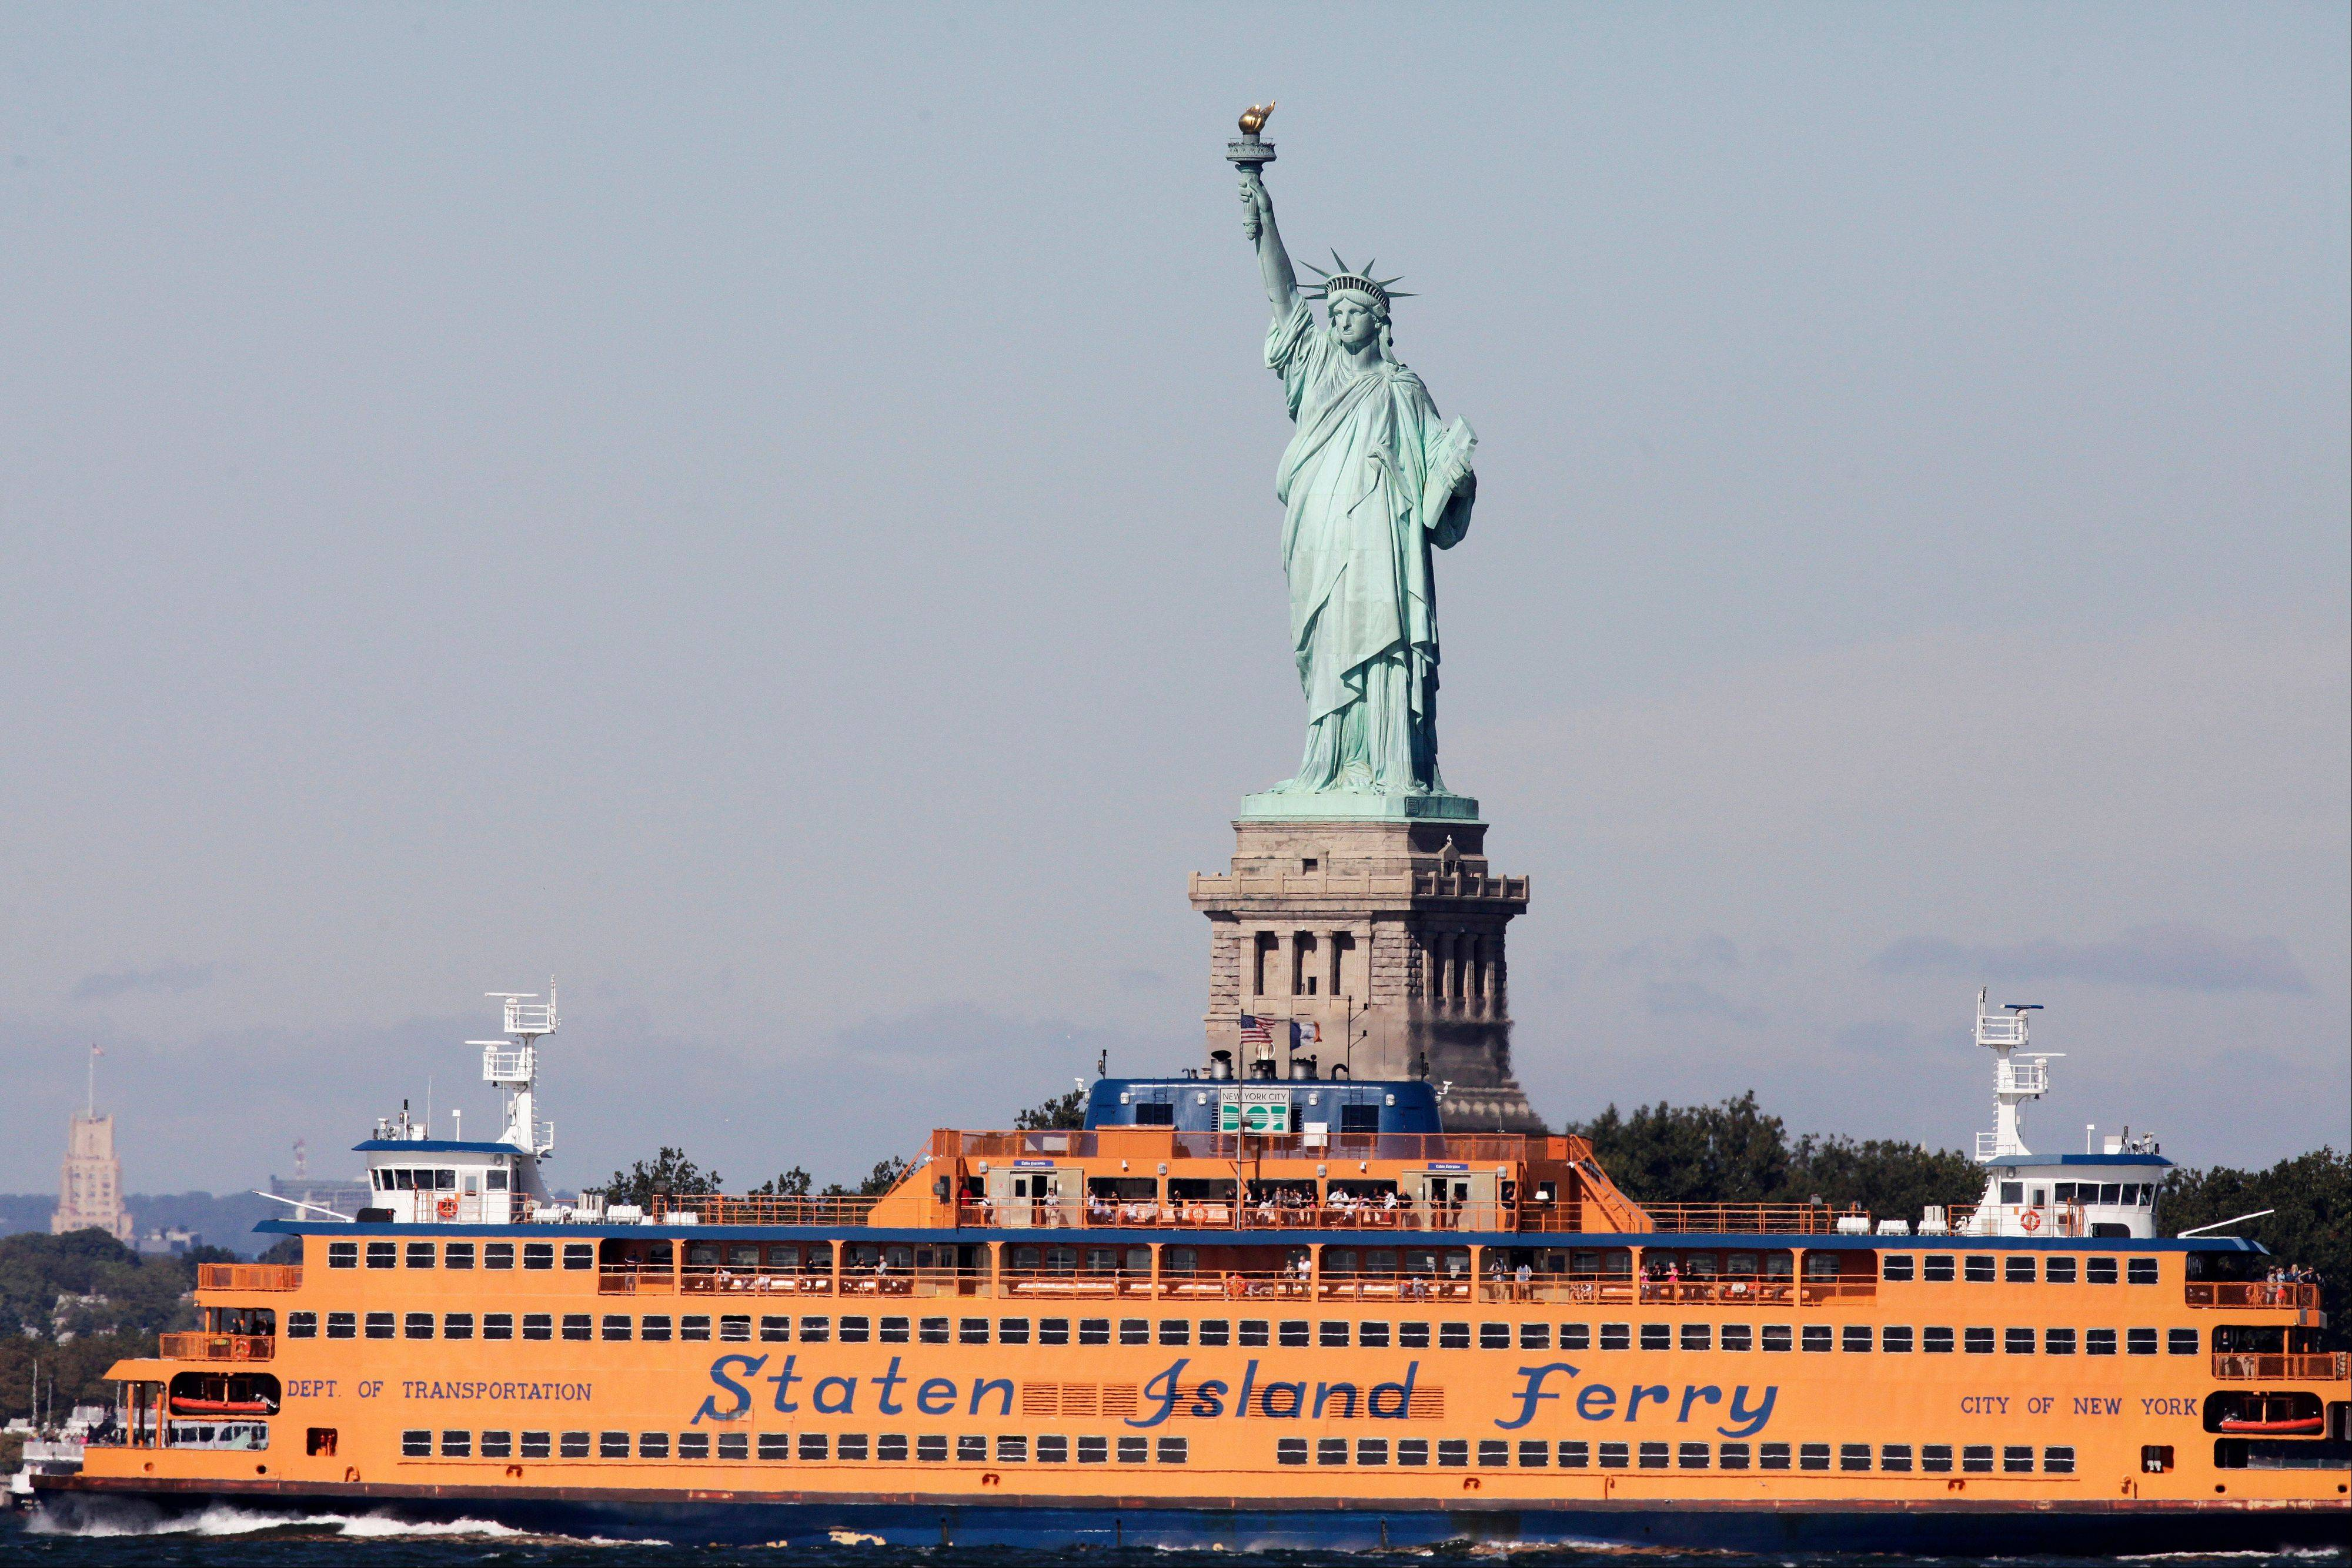 The Staten Island Ferry passes the Statue of Liberty as it crosses New York Harbor.